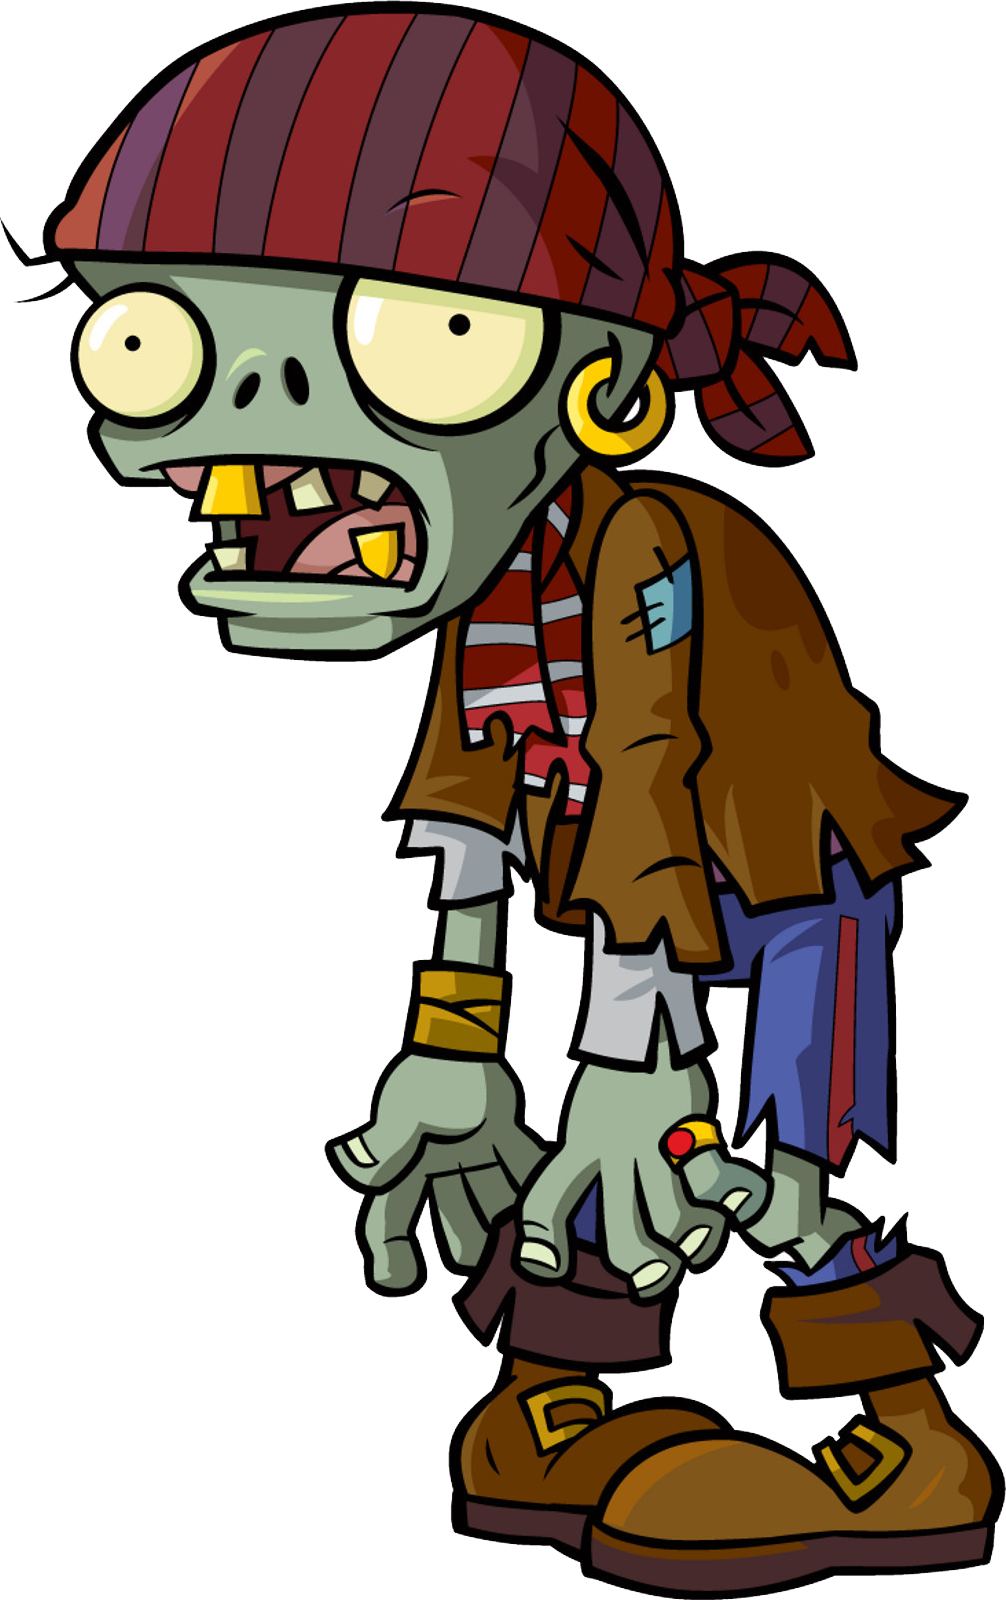 Fictional character Zombie Video Games PopCap Games Transparent